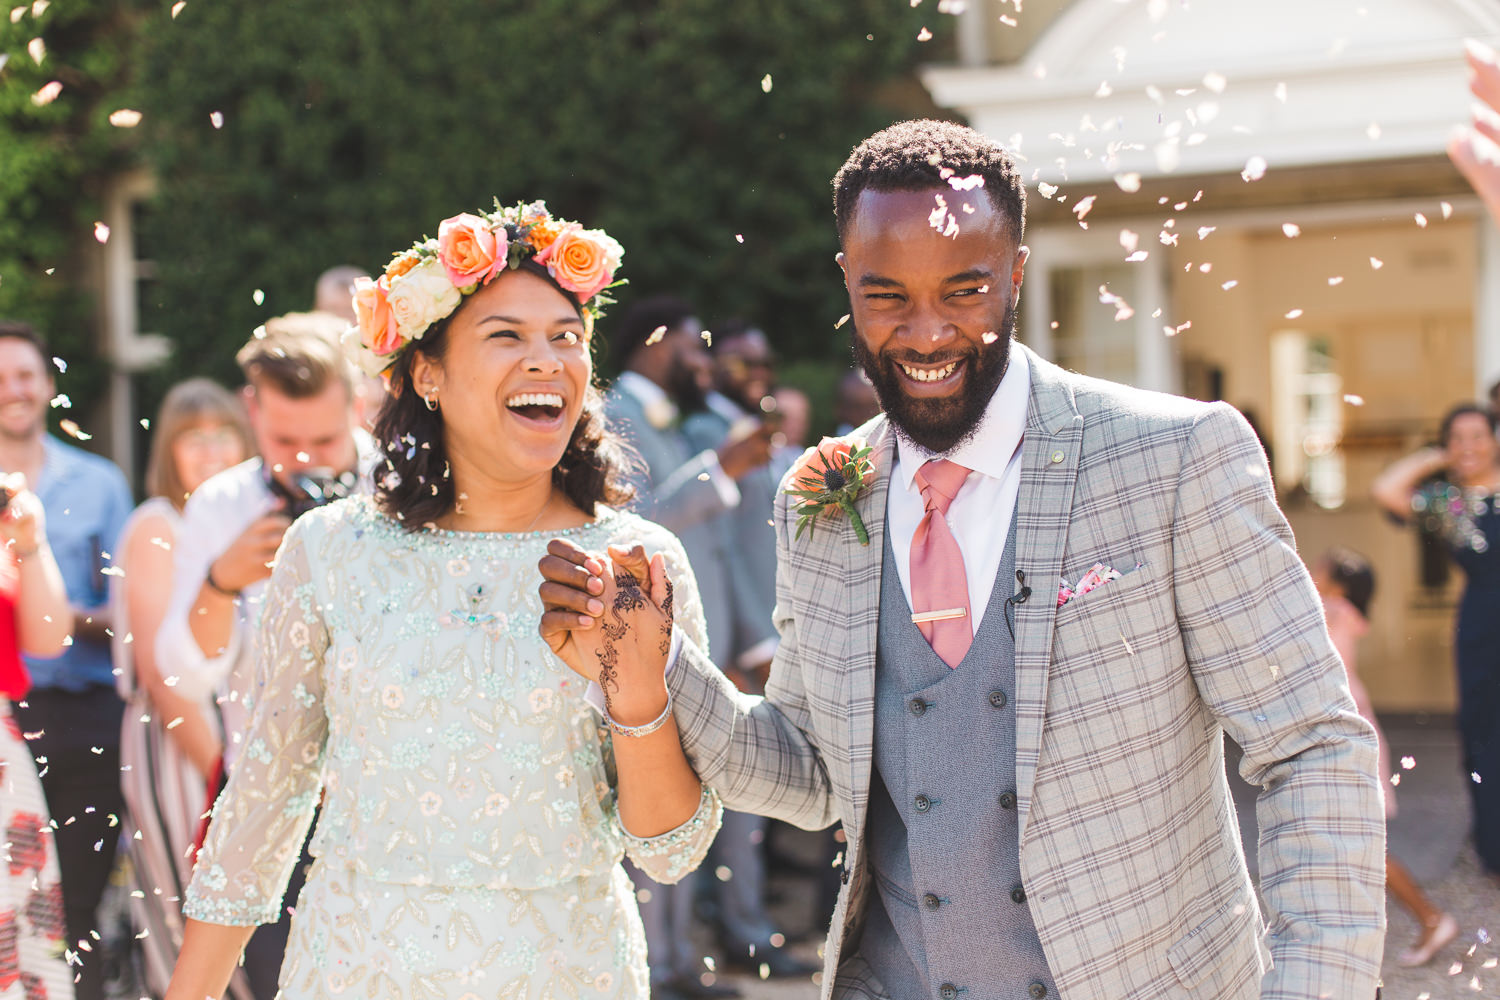 Bride and groom with confetti and beautiful fun faces at Northbrook Park wedding